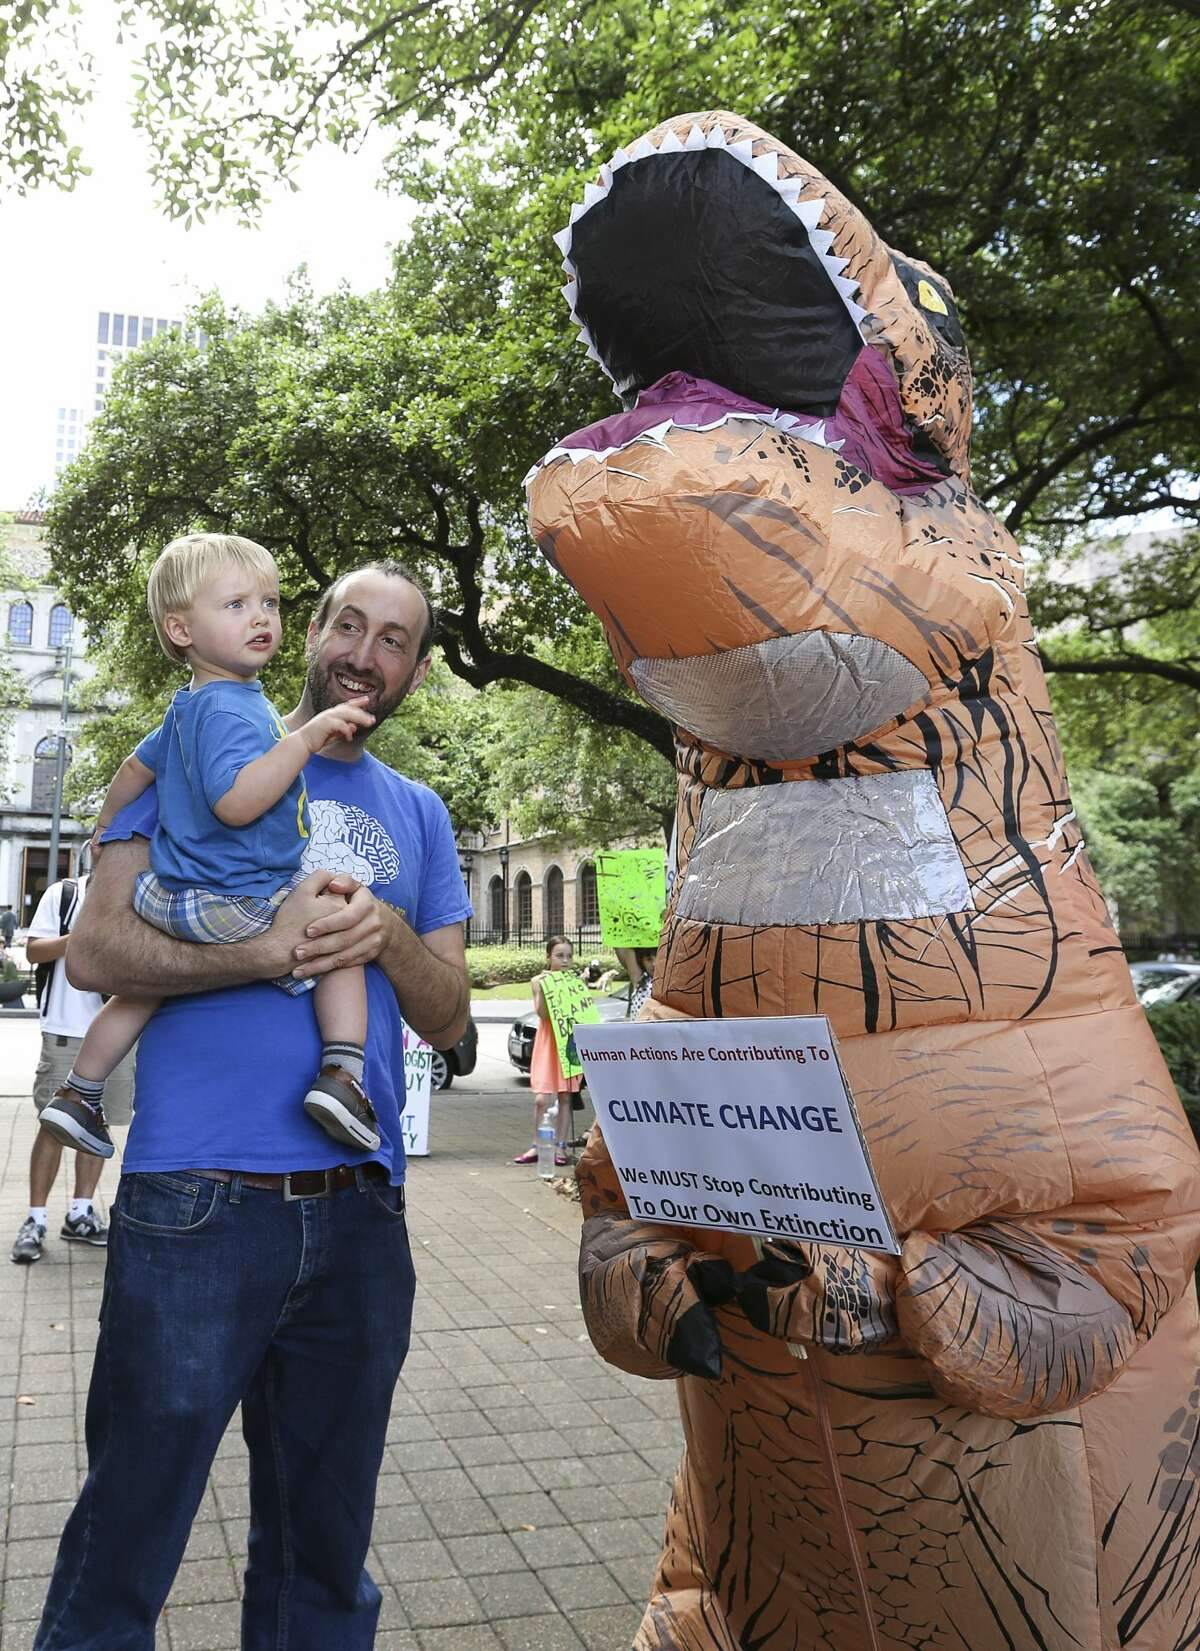 Jake Reimer, a neuroscientist at Baylor College of Medicine, takes his son, Silas, to meet a dressed-up Tyrannosaurus at the March for Science to support science Saturday, April 22, 2017, in Houston. The march began from Sam Houston Park and ended at City Hall. ( Yi-Chin Lee / Houston Chronicle )